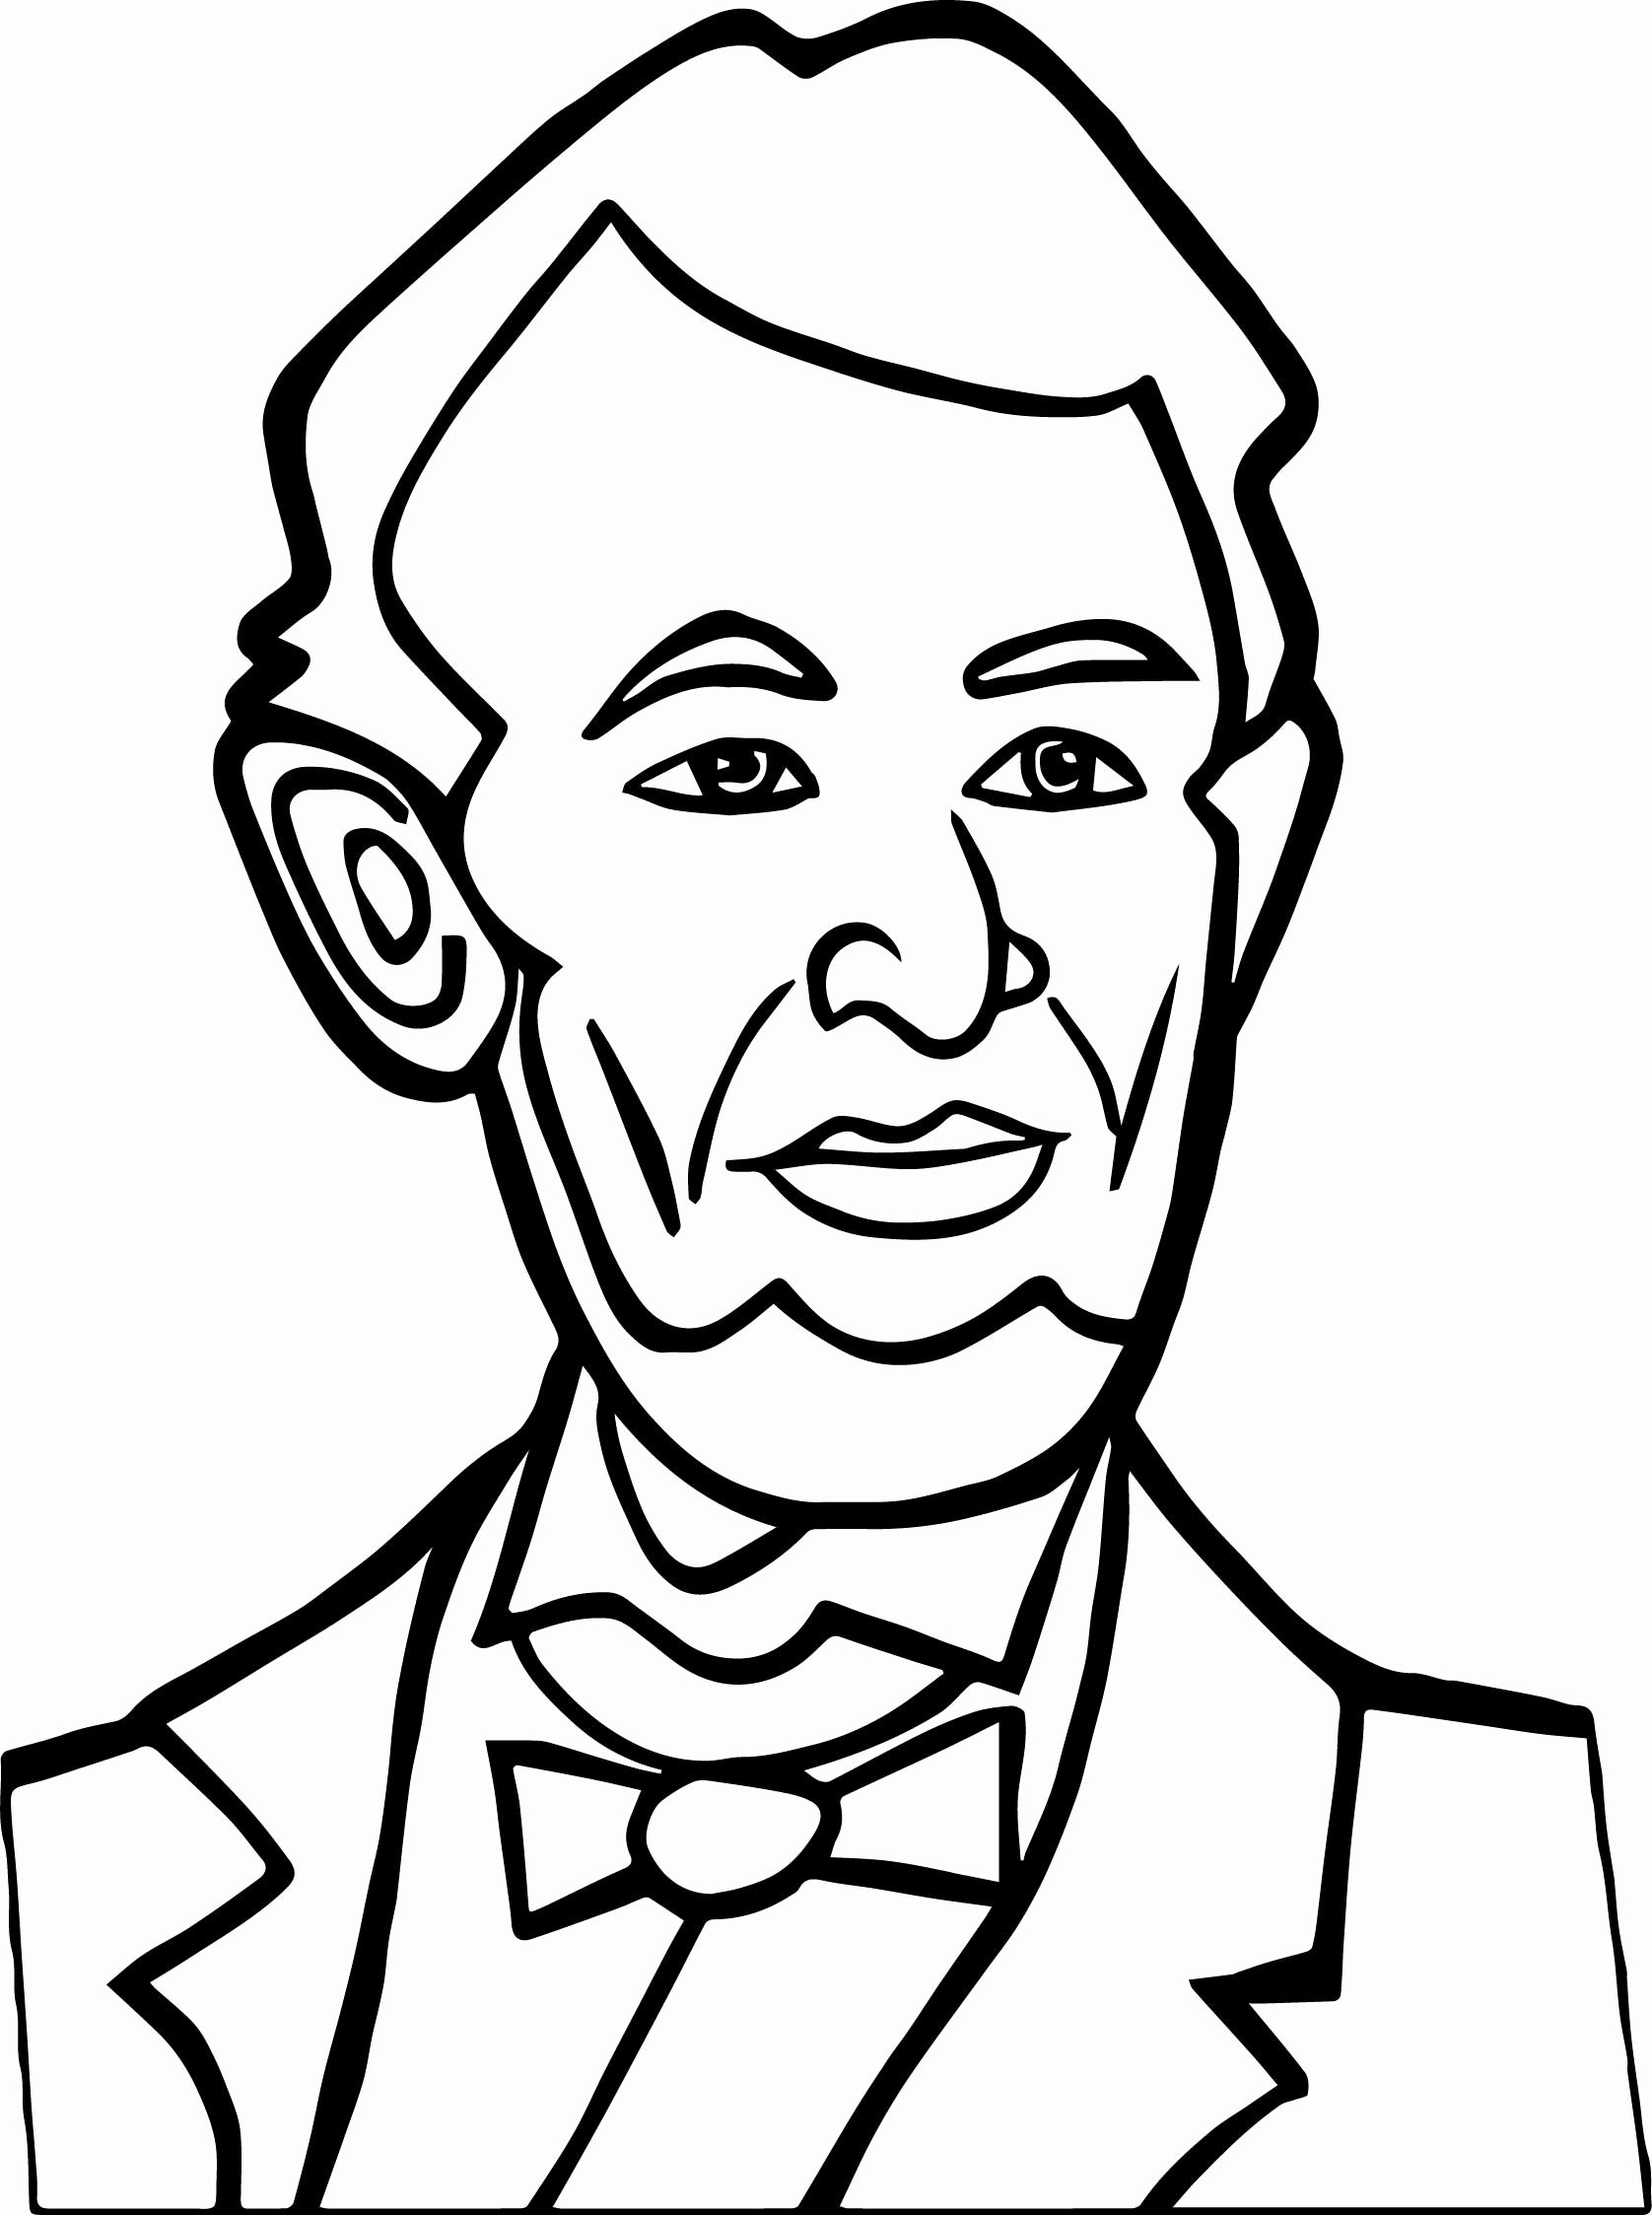 Abraham Lincoln Coloring Page At Getcolorings